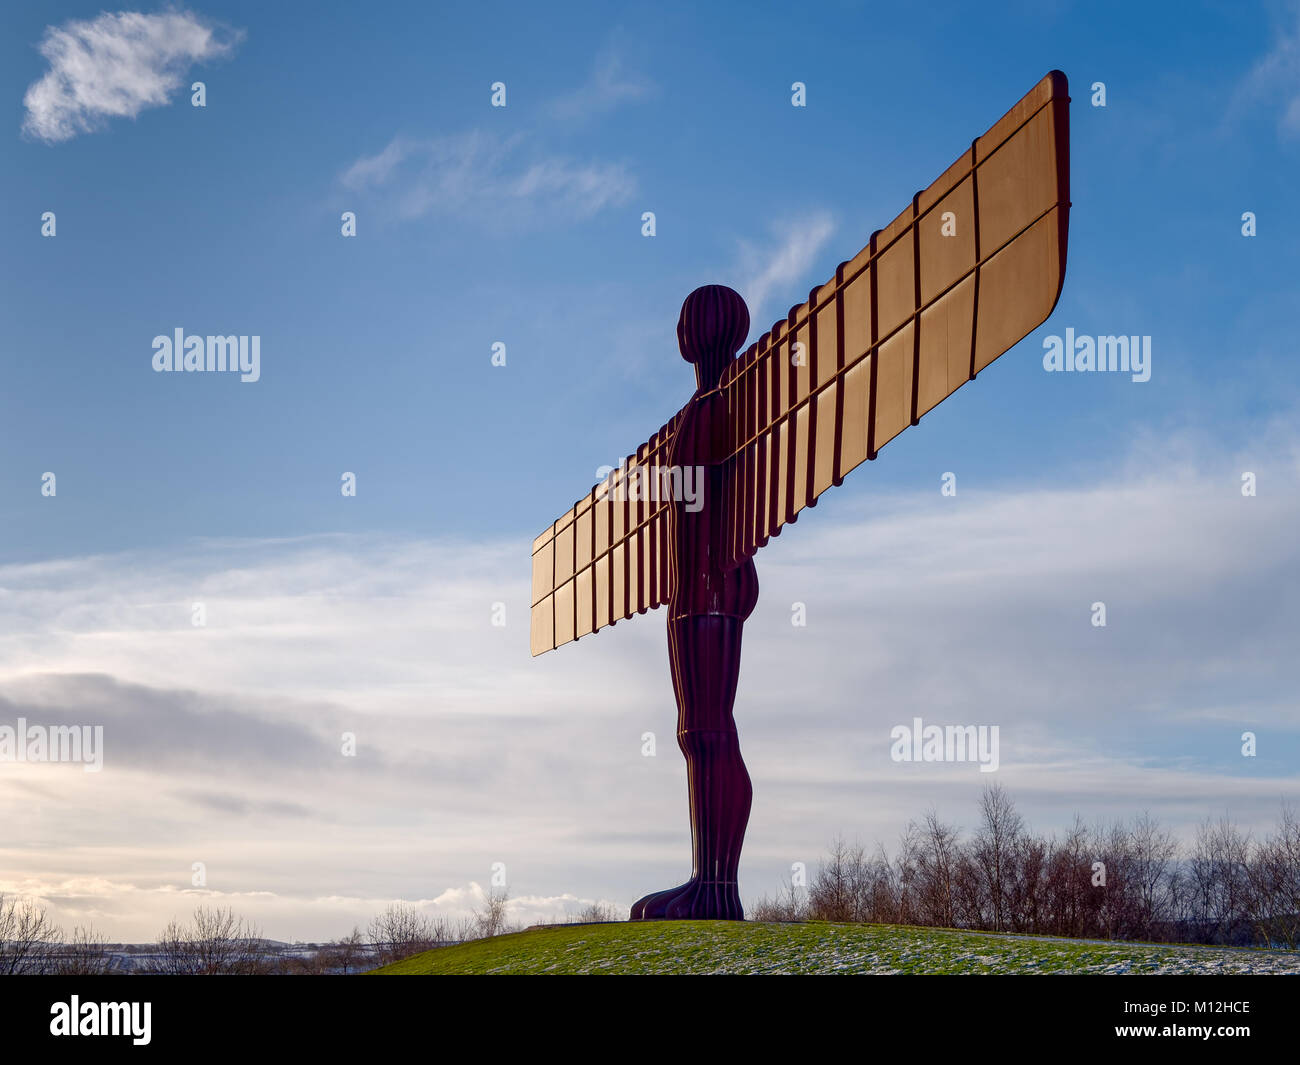 GATESHEAD, TYNE AND WEAR/UK - JANUARY 19 : View of the Angel of the North Sculpture in Gateshead, Tyne and Wear - Stock Image